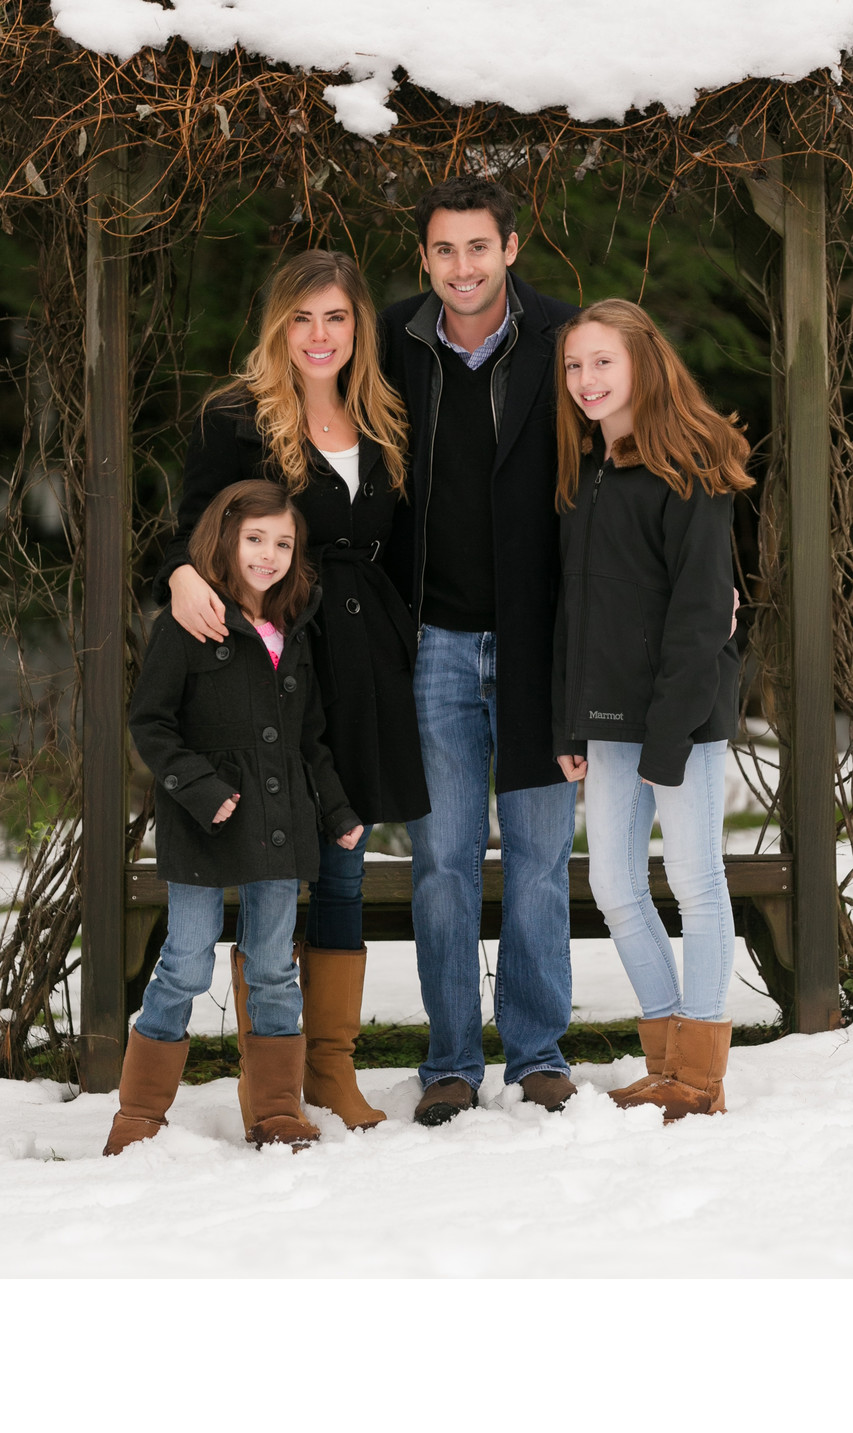 Winter Associate Family Photography